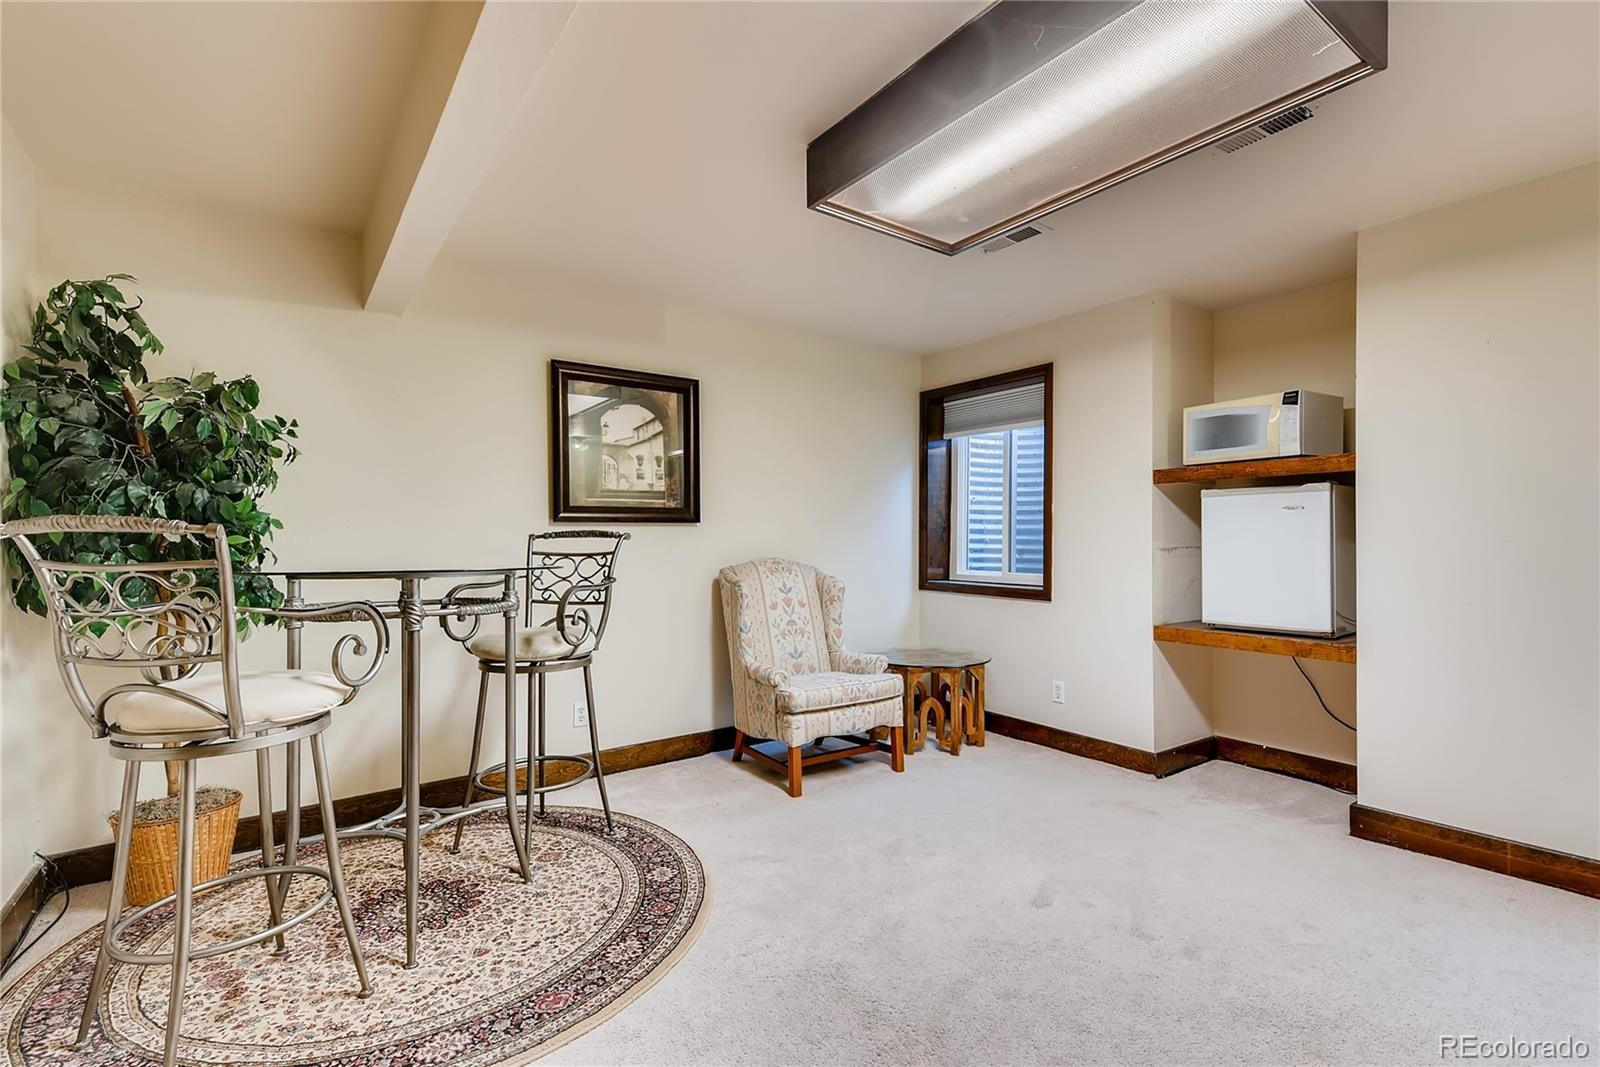 MLS# 6910180 - 17 - 2336 Ranch Drive, Westminster, CO 80234